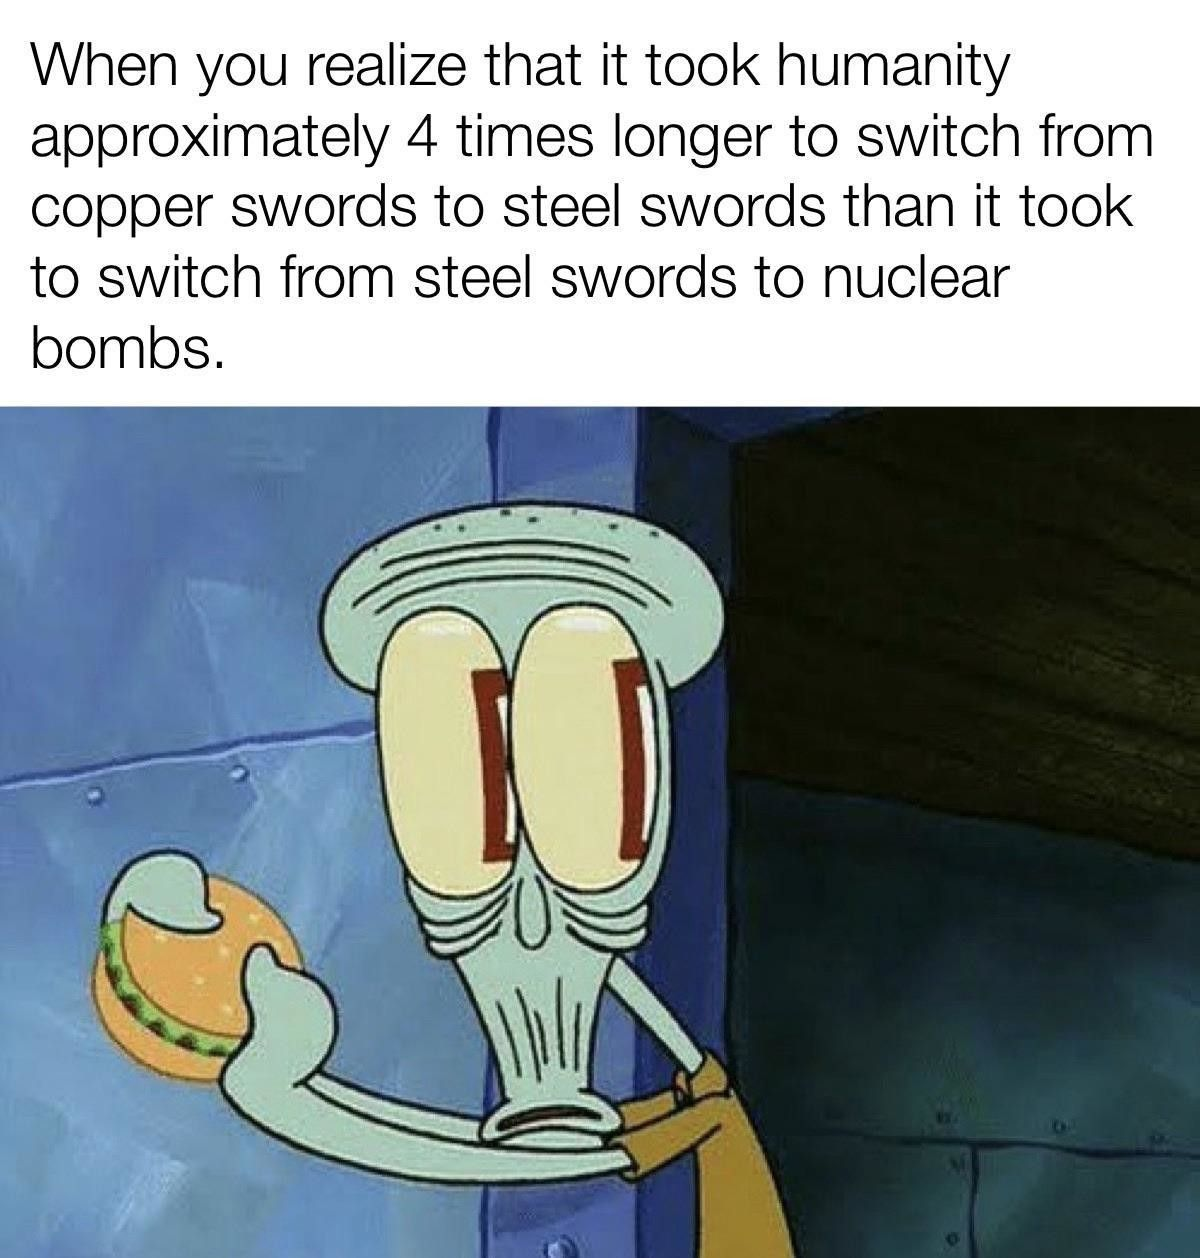 And it will take 4 times shorter to get from nukes to nuclear-powered sexdolls that can kill you